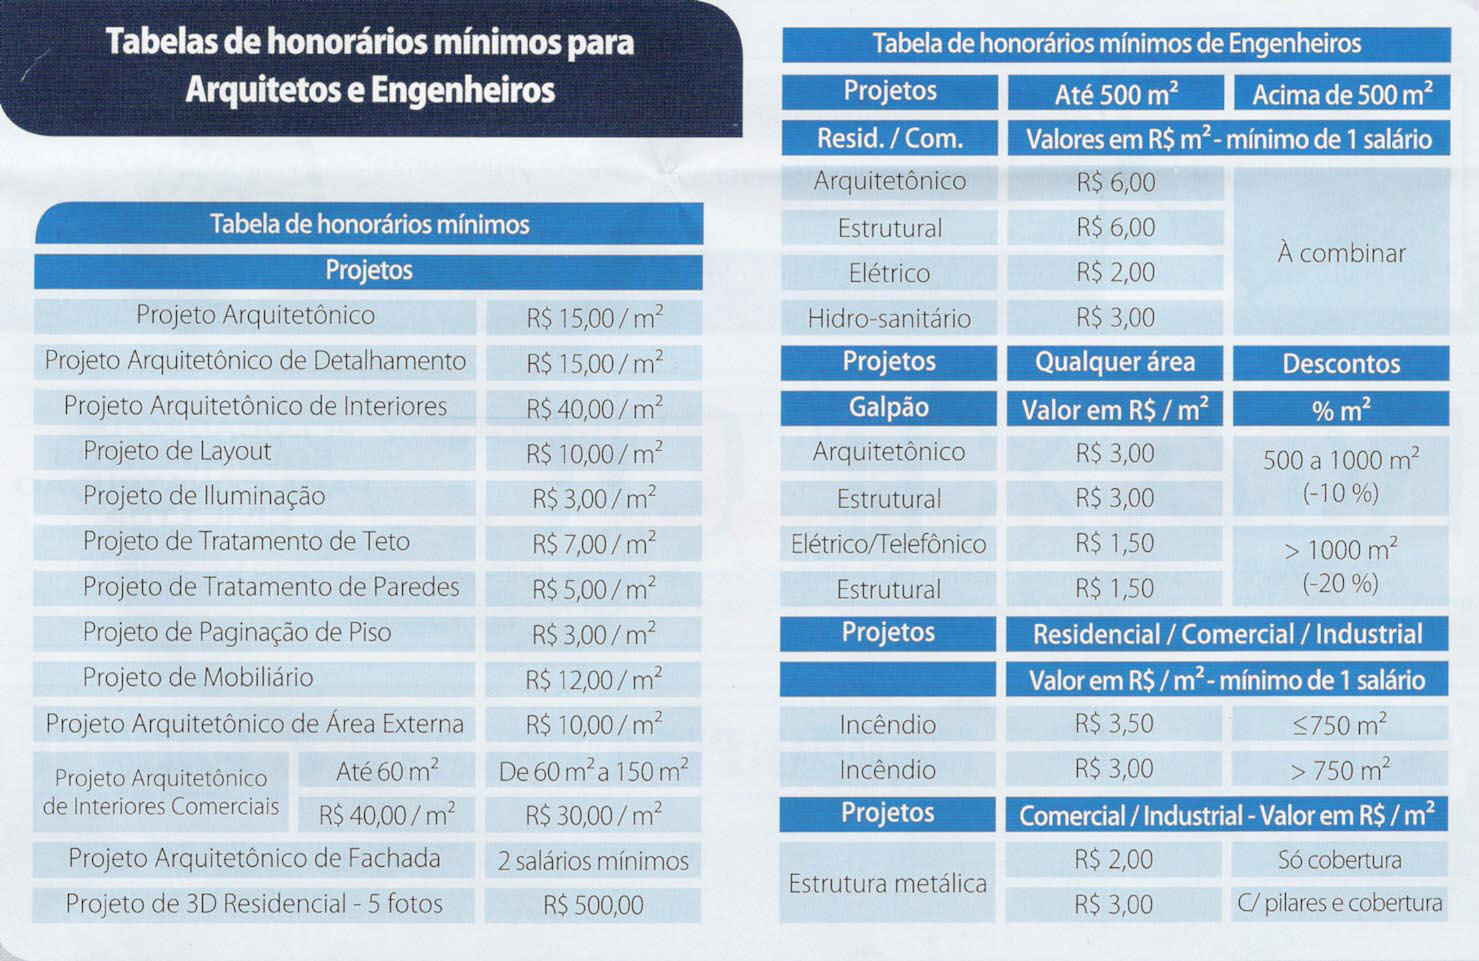 honorarios decoracao interioresPostado por Luciana Moterani